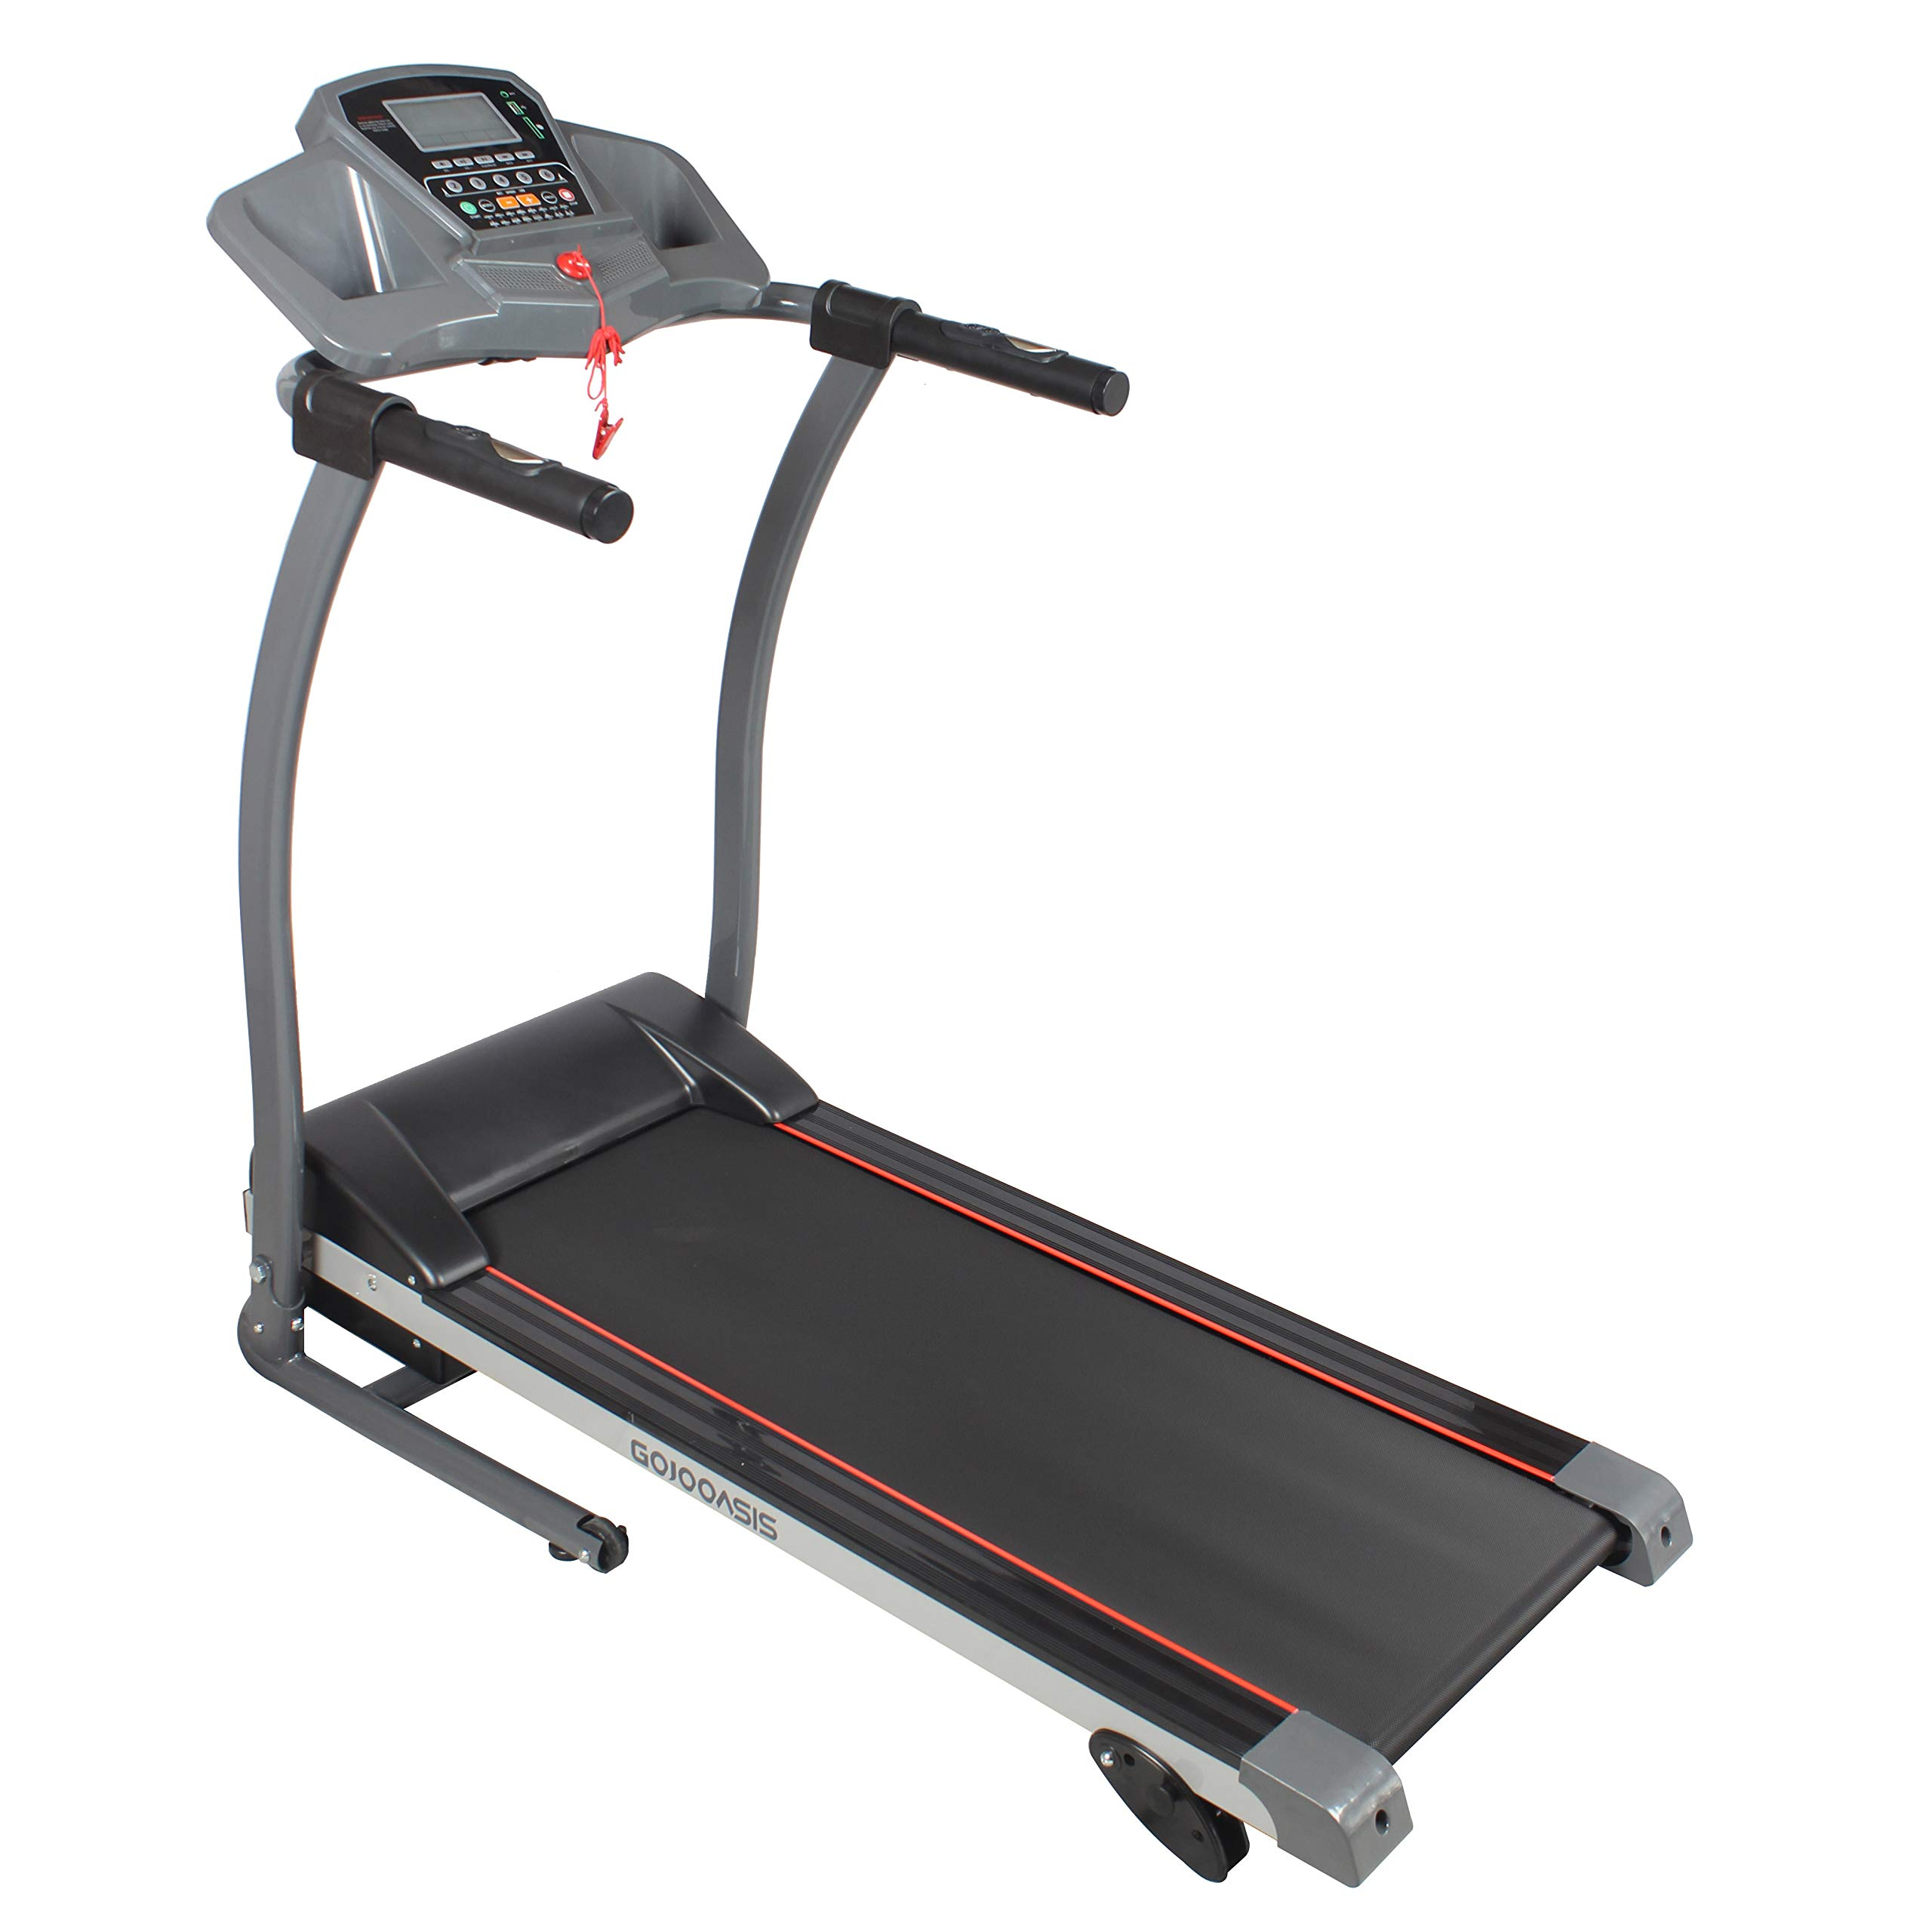 GOJOOASIS Folding Treadmill 2.0HP Motorized Running Exercise Machine w/Incline by GOJOOASIS (Image #1)